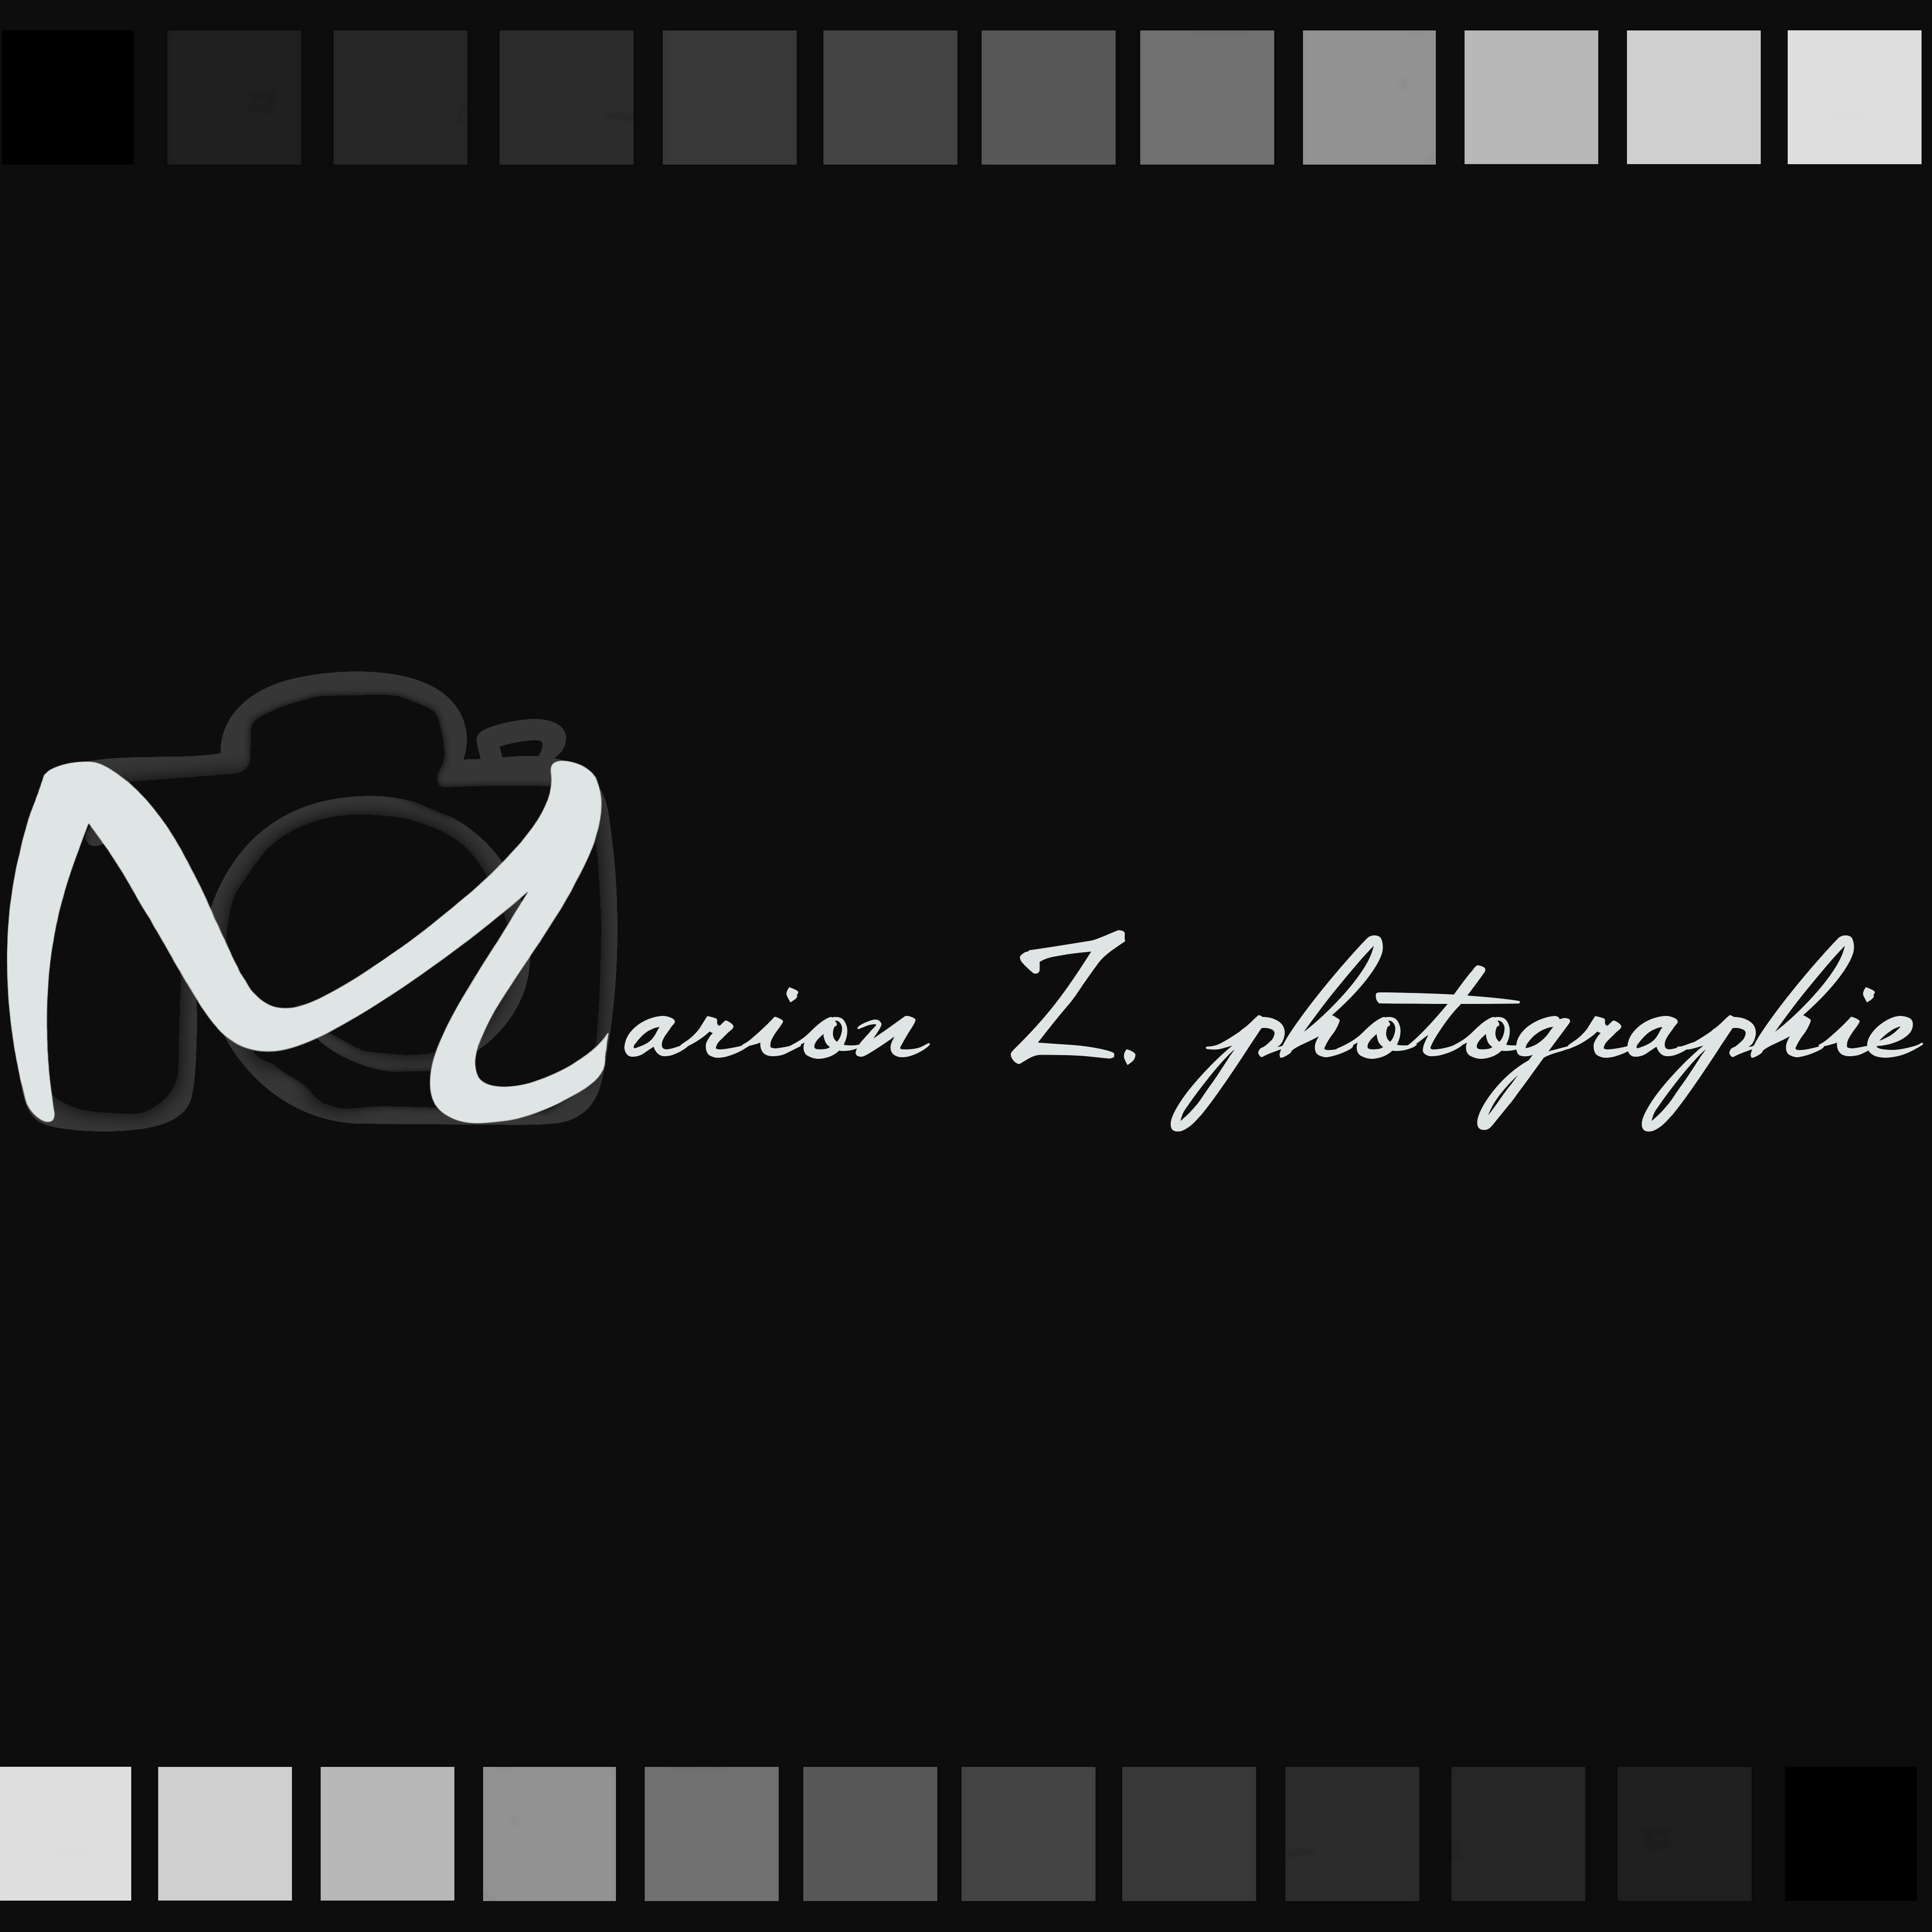 Marion Z. photographie